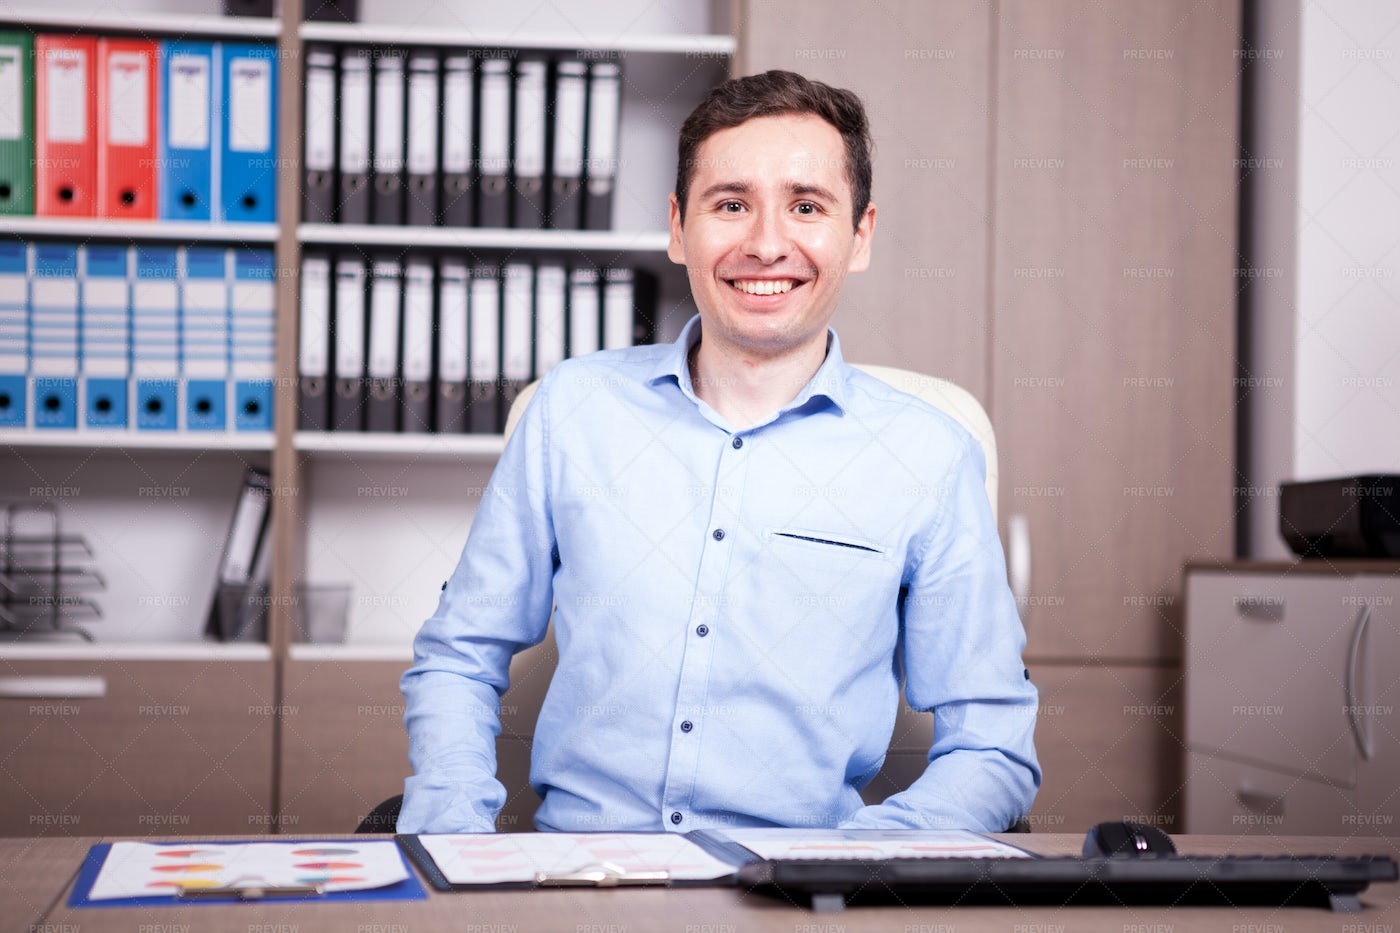 Smiling Businessman In Office: Stock Photos